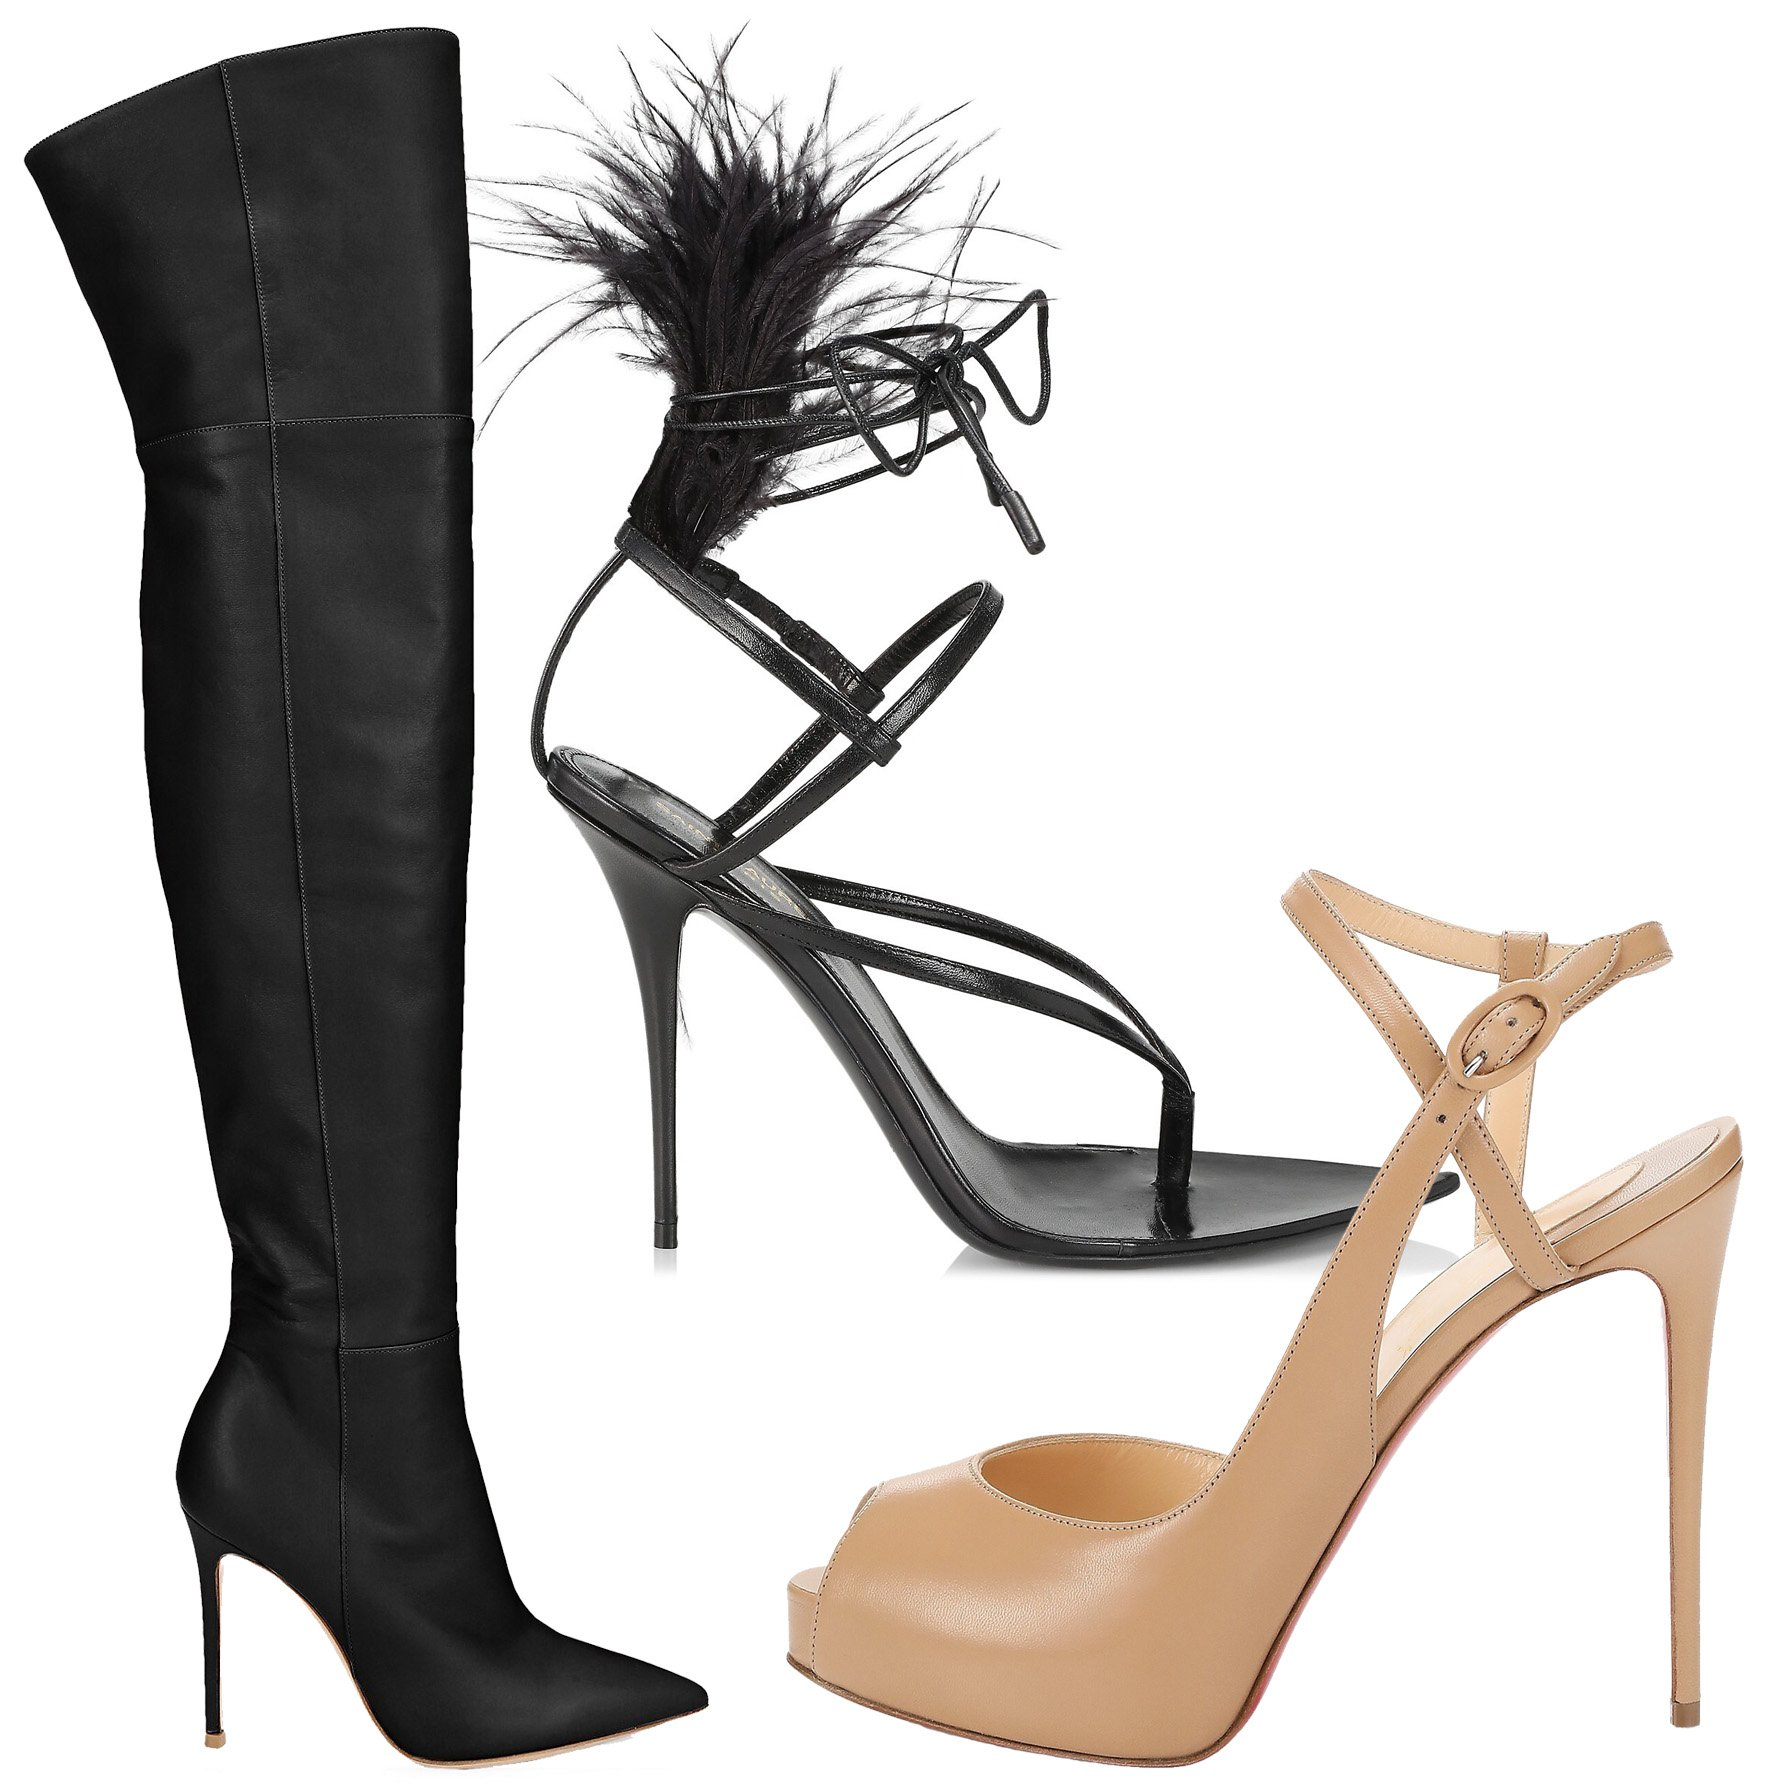 Named after the stiletto dagger, stiletto is the sexiest type of heel with its long and ultra-slim shape